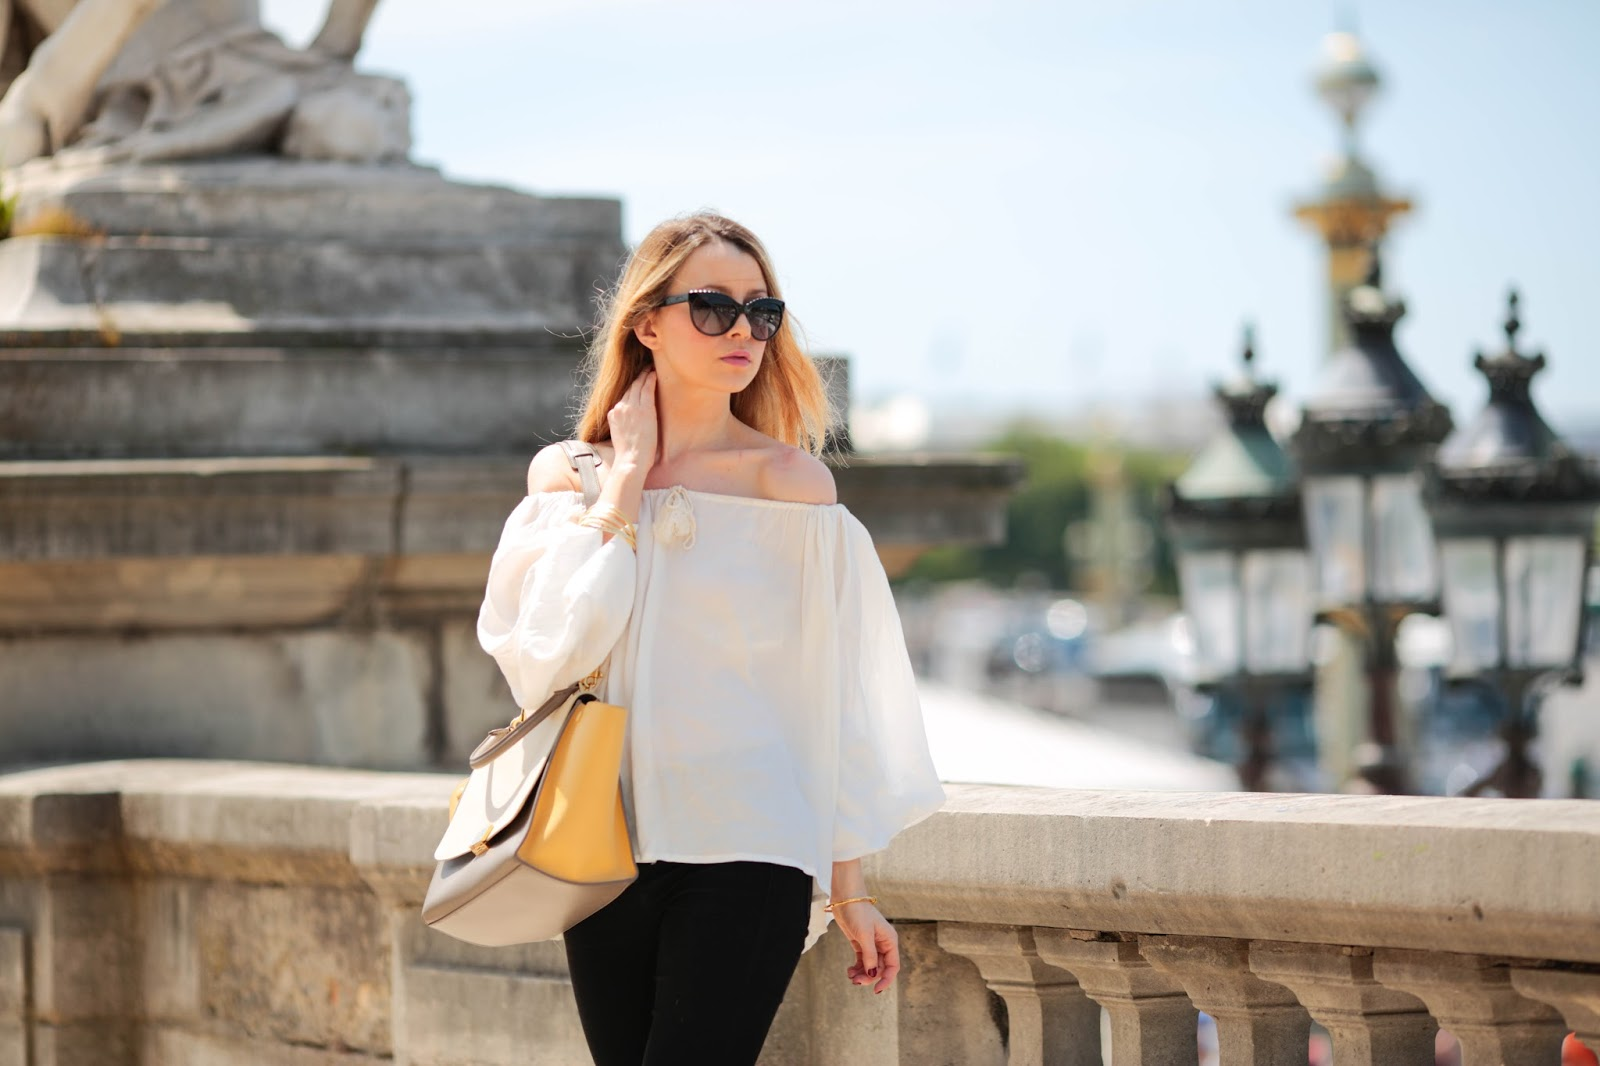 videdressing, bohemian traders, chanel, céline, streetstyle, paris, fashion blogger